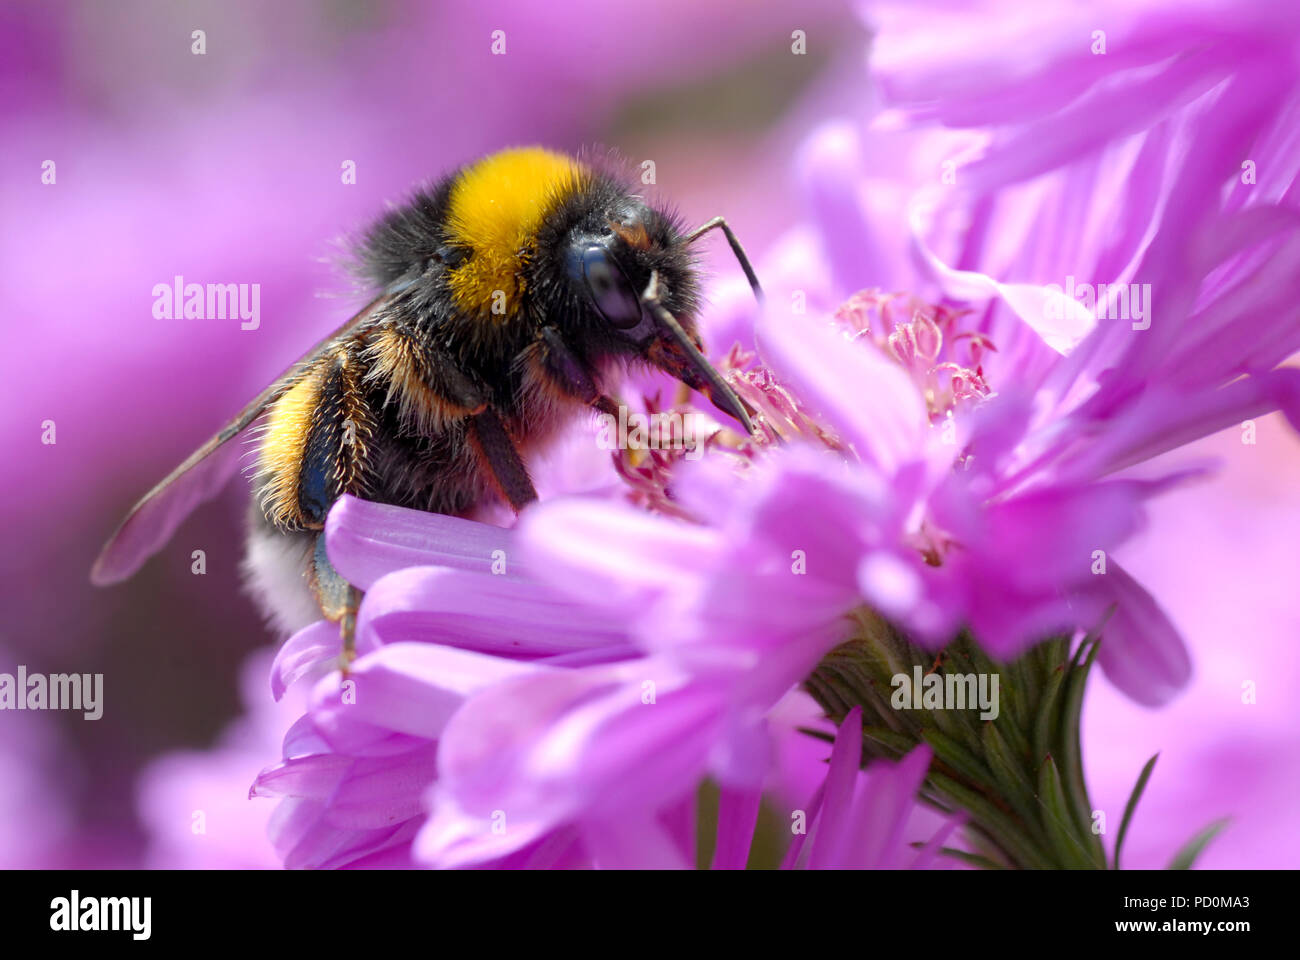 Macro yellow and black bumblebee (Bombus terrestris) feeding on flower of aster - Stock Image